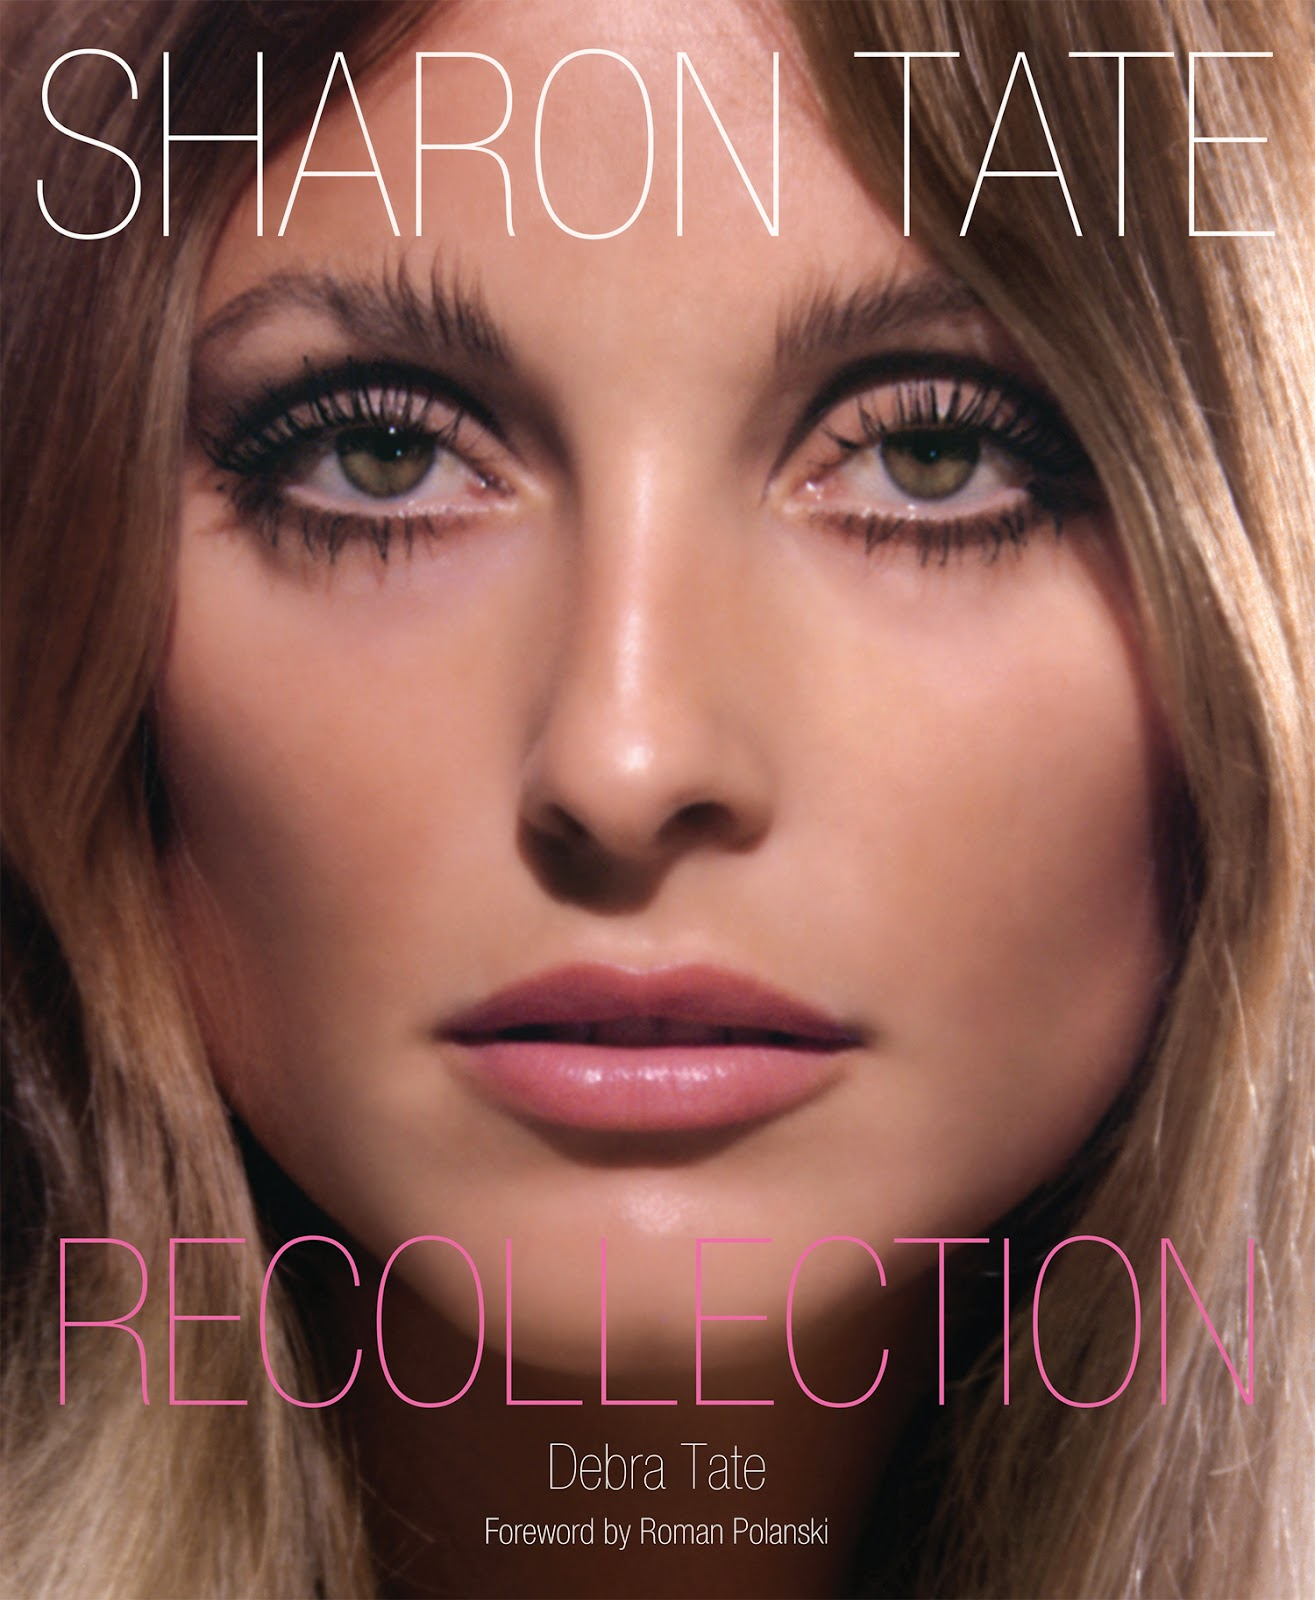 kenneth in the (212): Sharon Tate: Recollection?